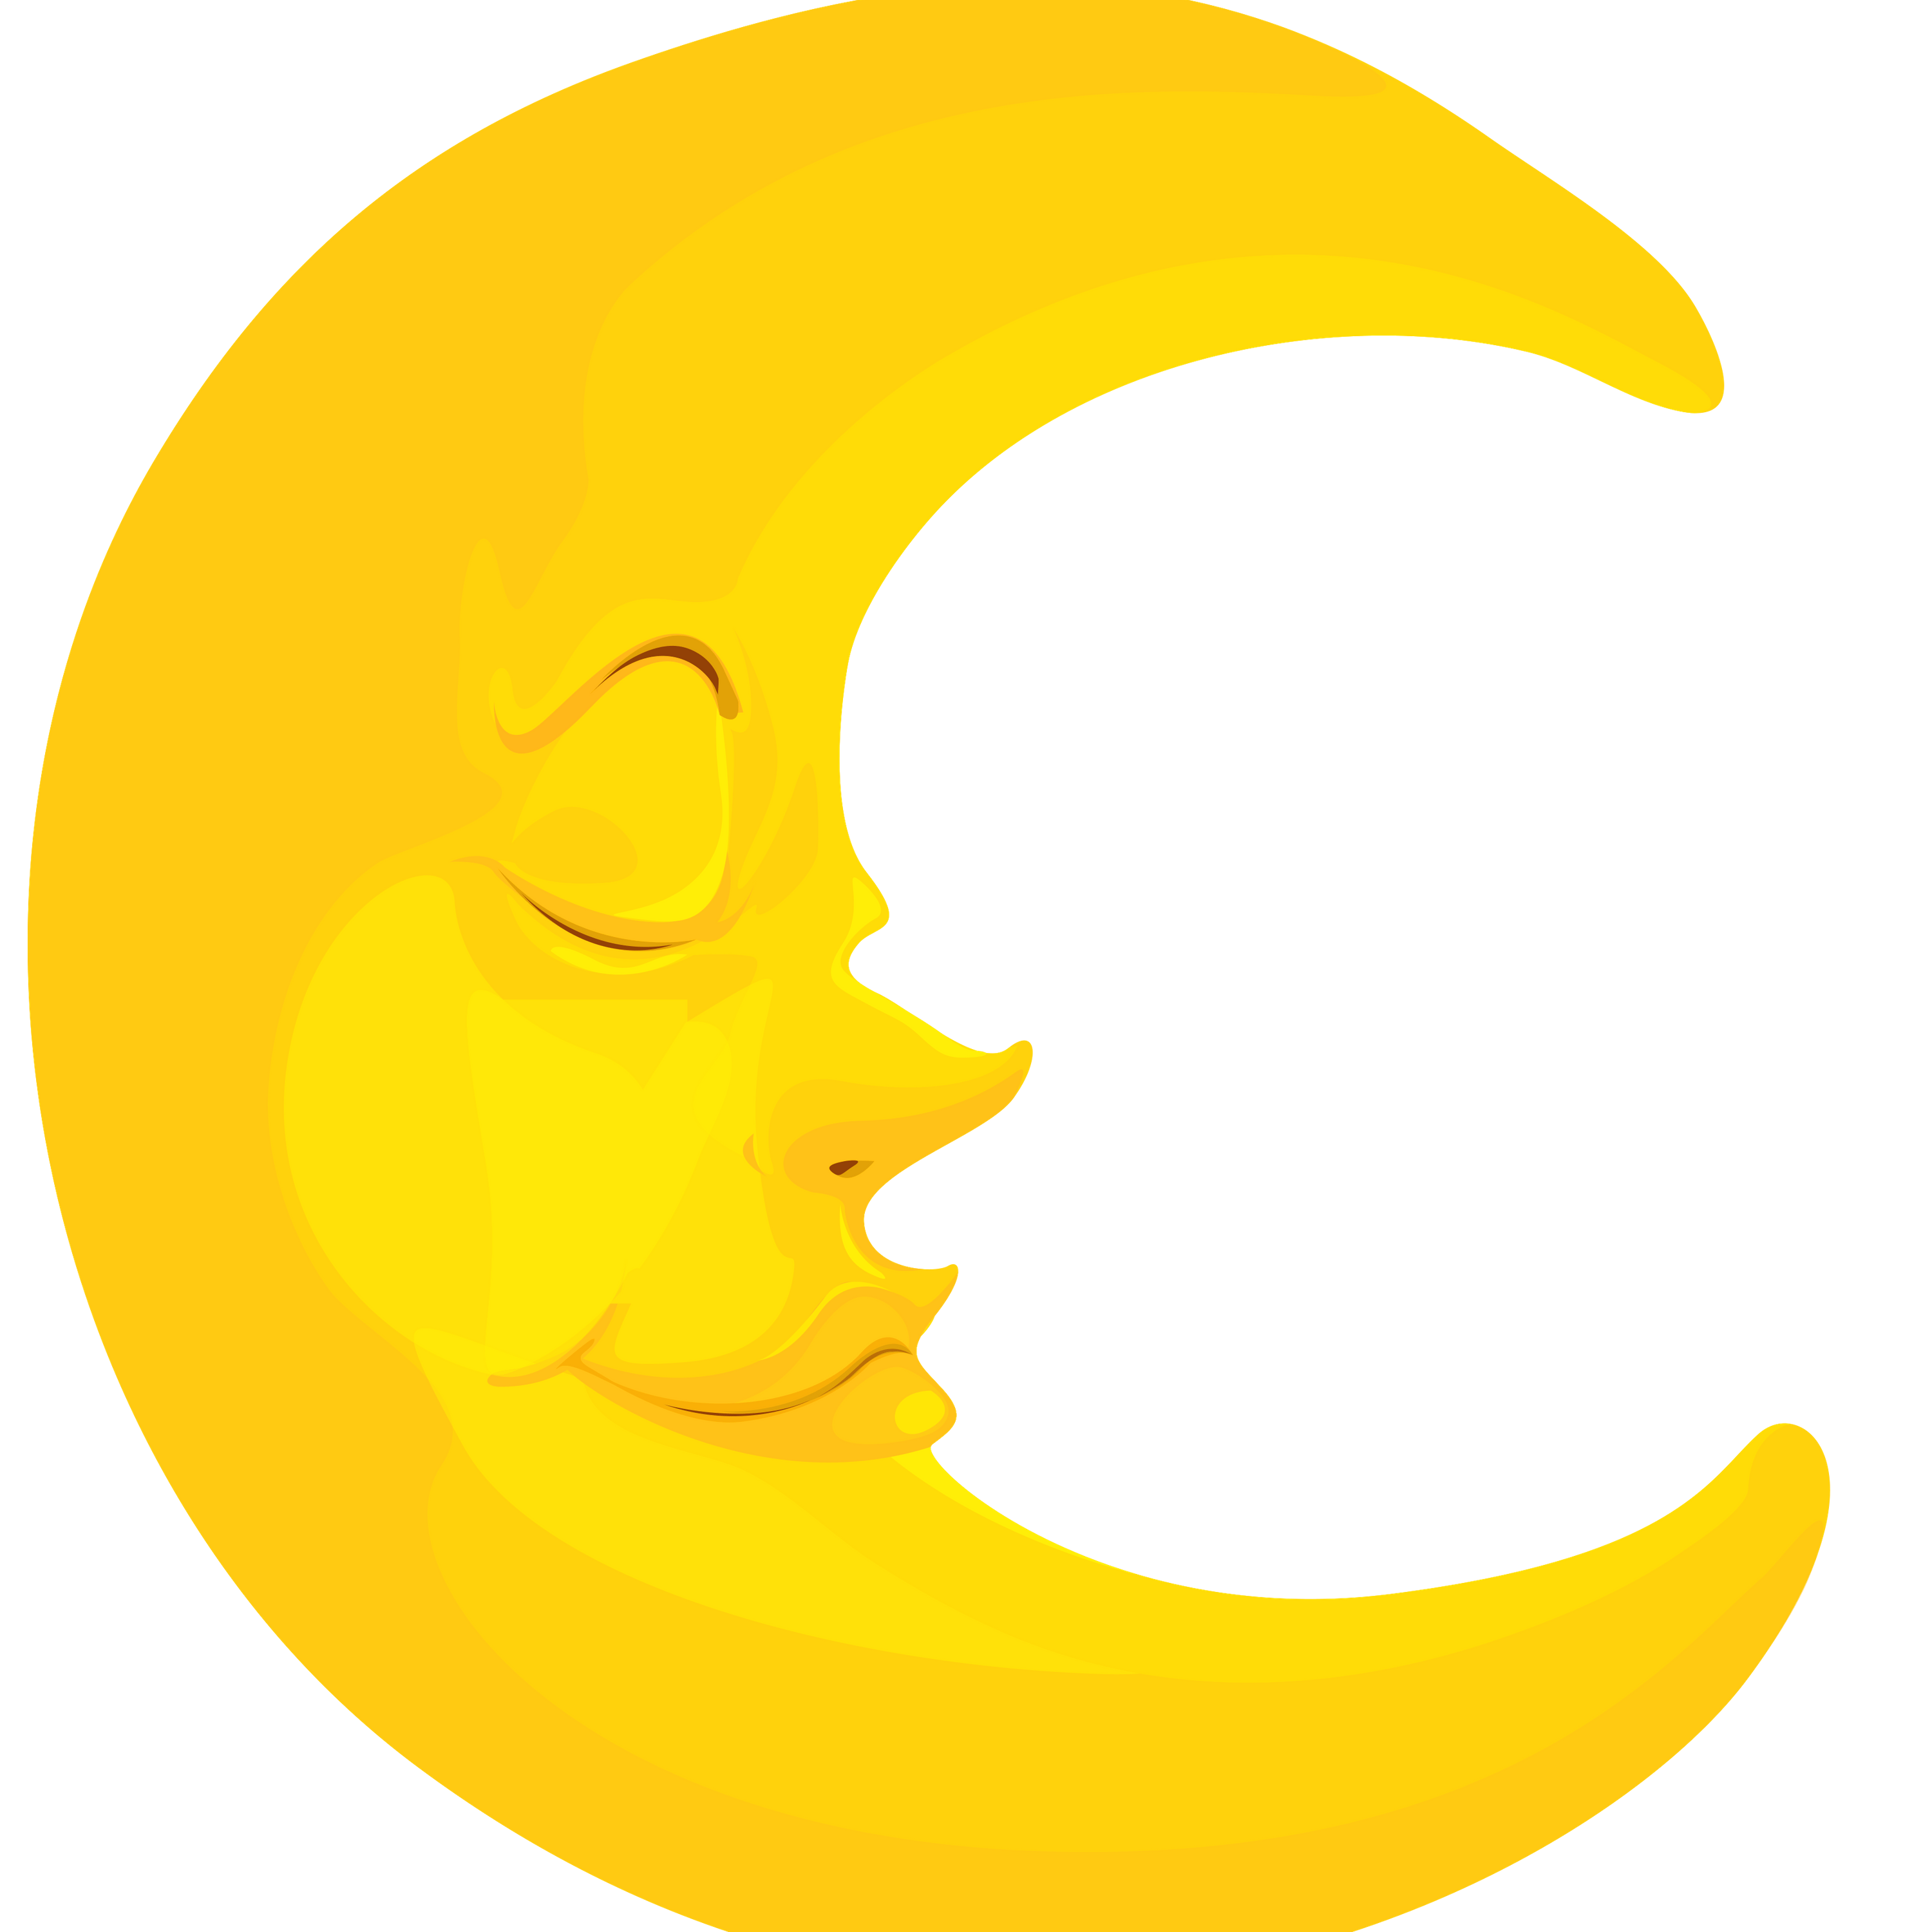 new moon clipart at getdrawings com free for personal use new moon rh getdrawings com crescent moon clip art free crescent moon ramadan clipart